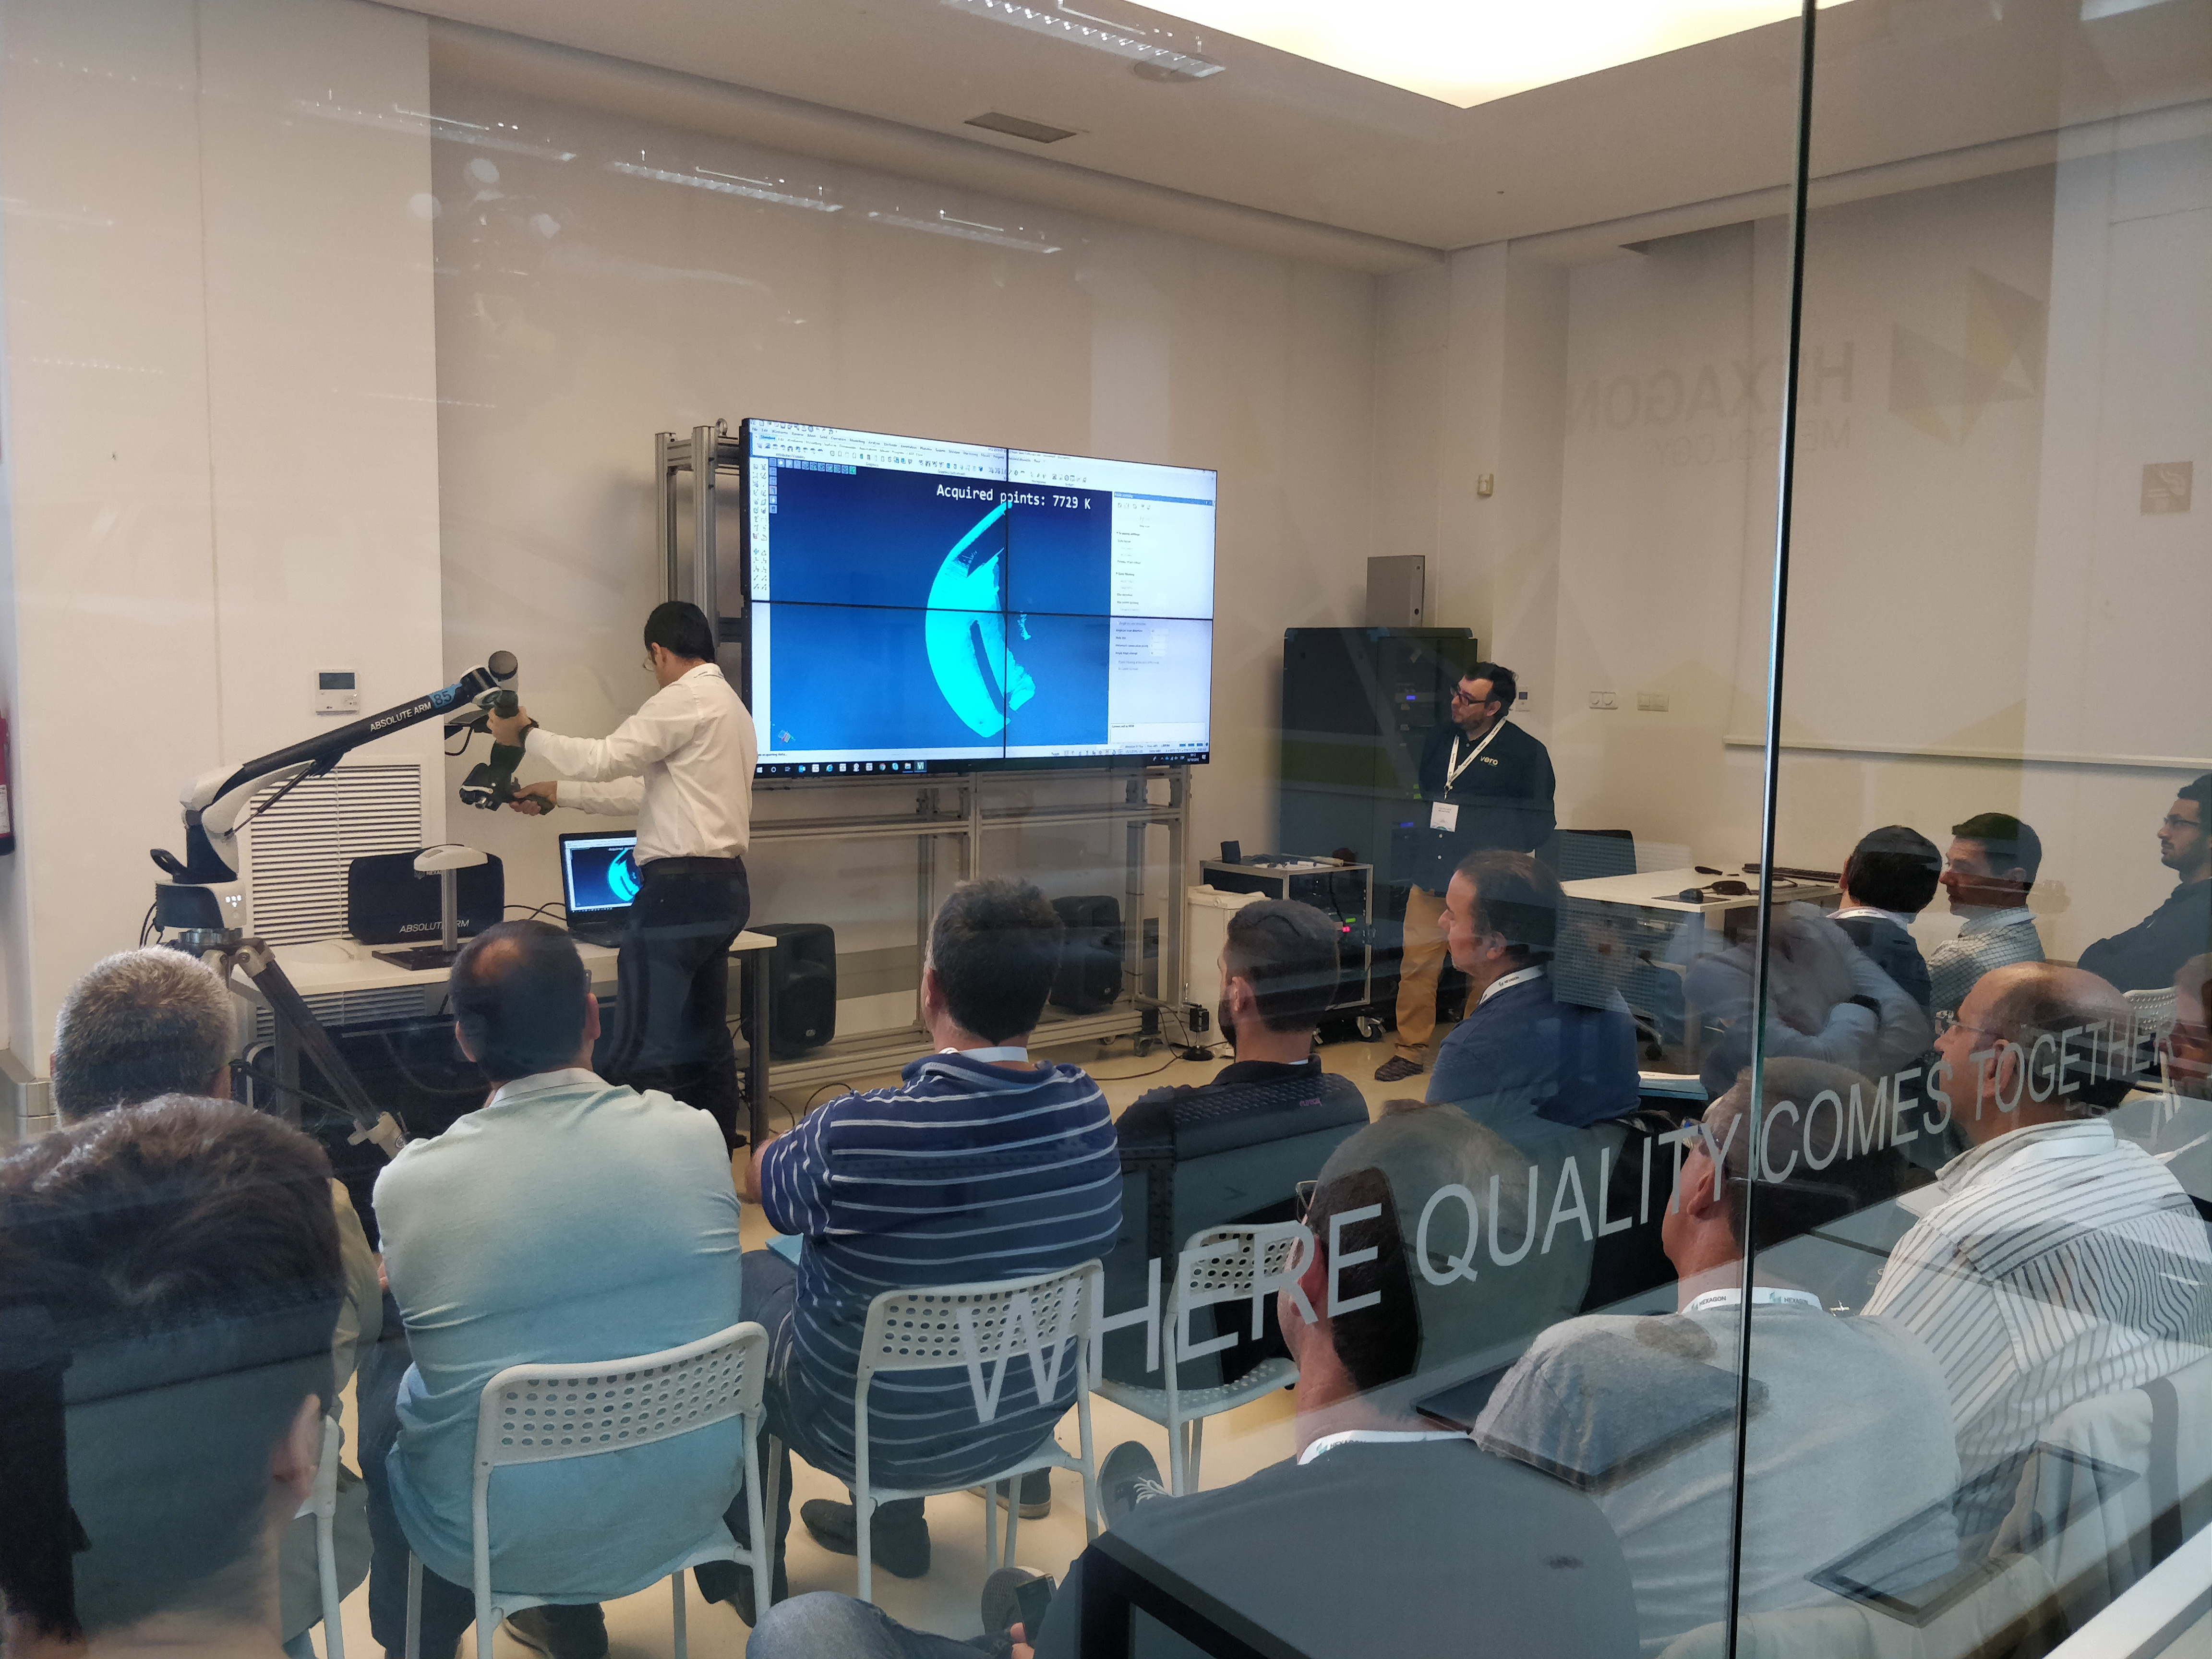 Hexagon MI organiza con su nueva división Production Software una jornada sobre moldes y matrices en Zaragoza